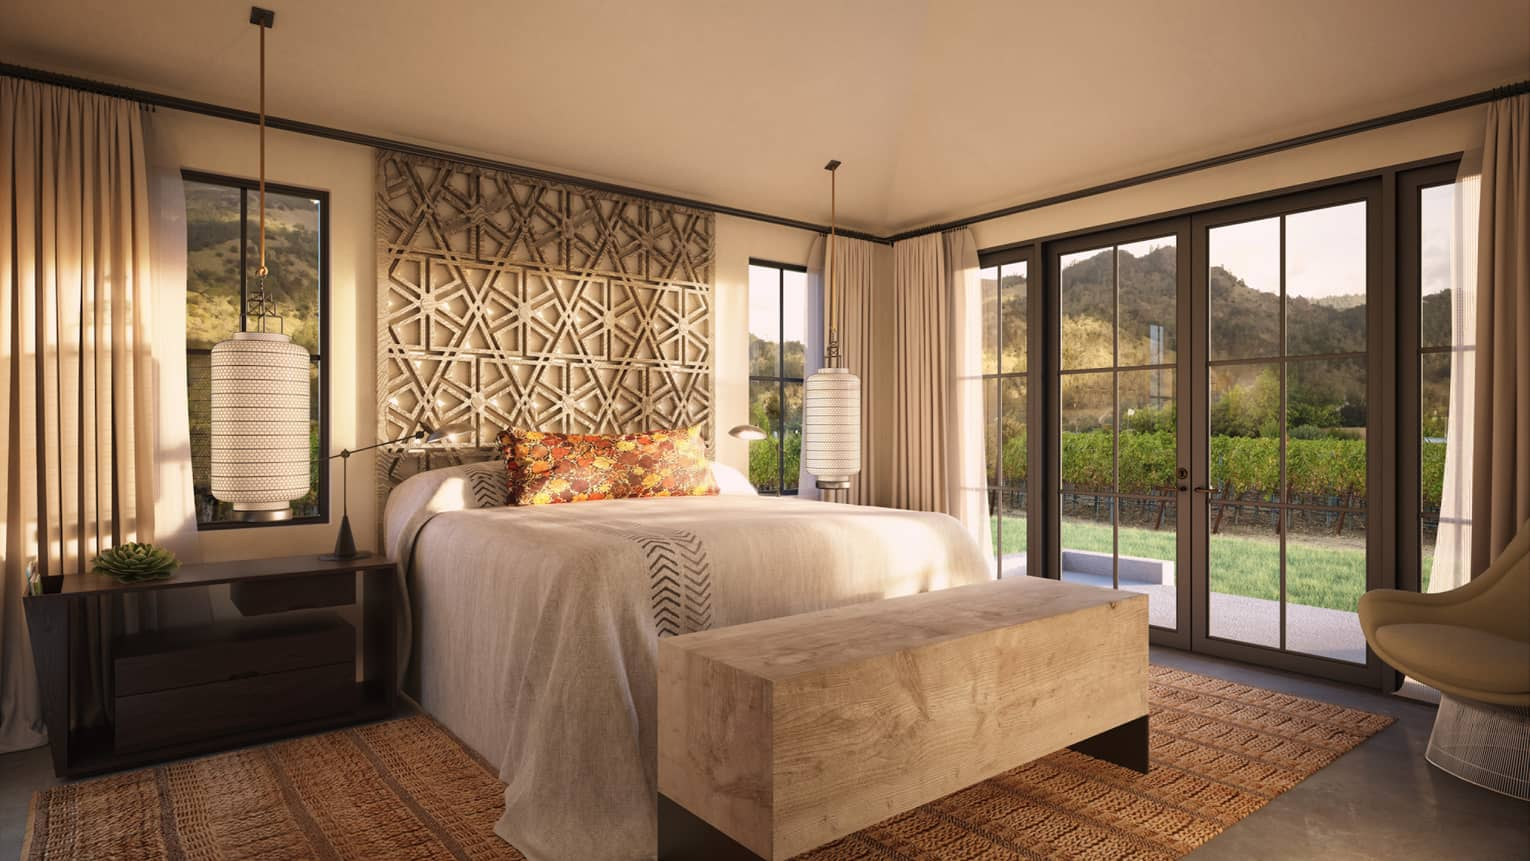 Hotel room bed with decorative headboard, wood bench by glass French doors to patio